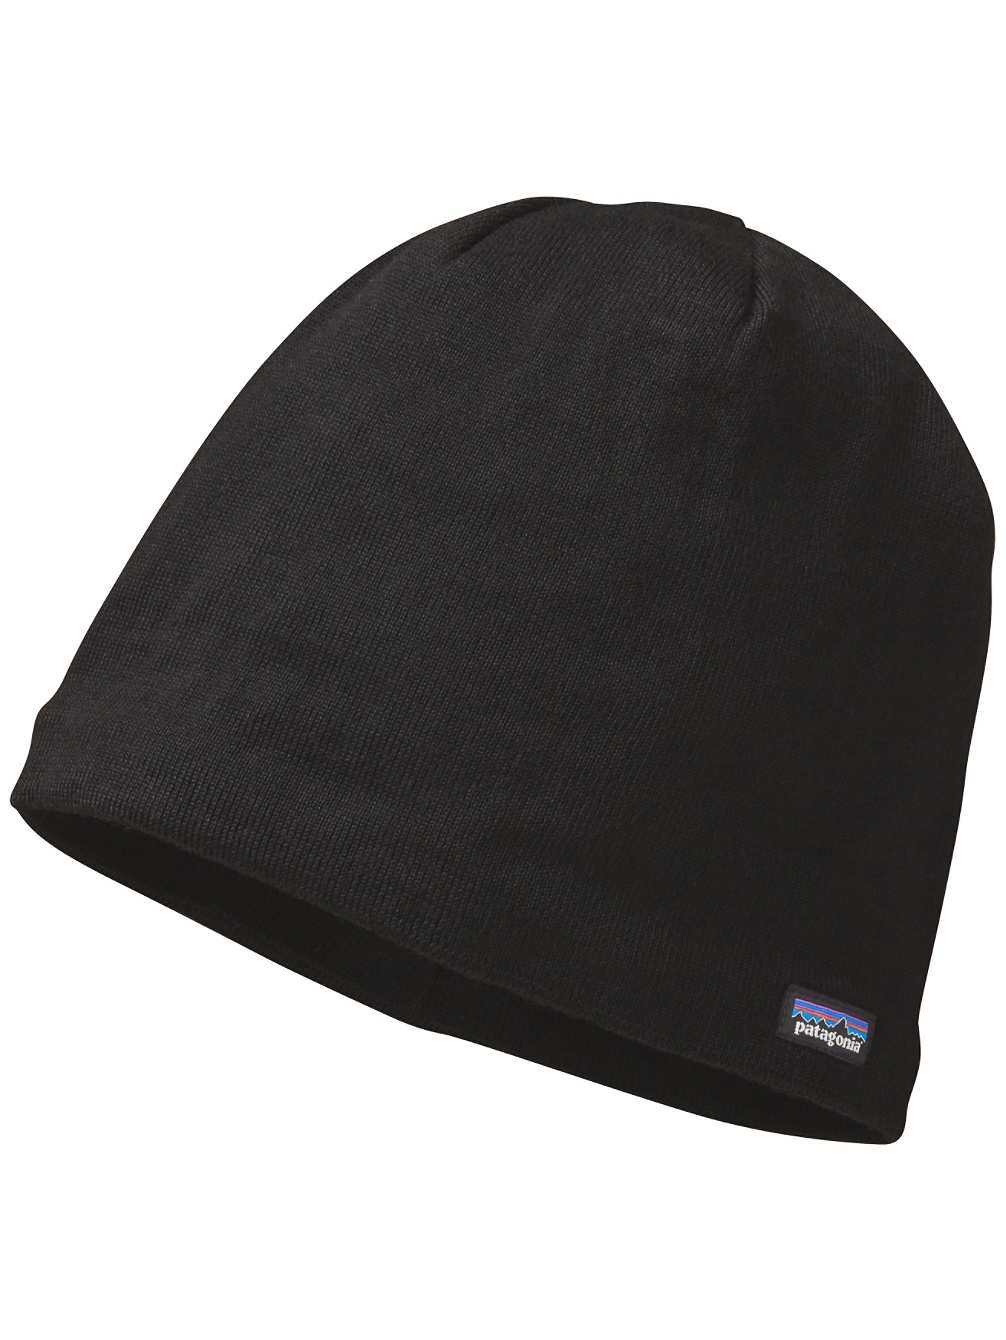 Patagonia 28860BLKALL - Beanie hat color: black talla: all: Amazon ...